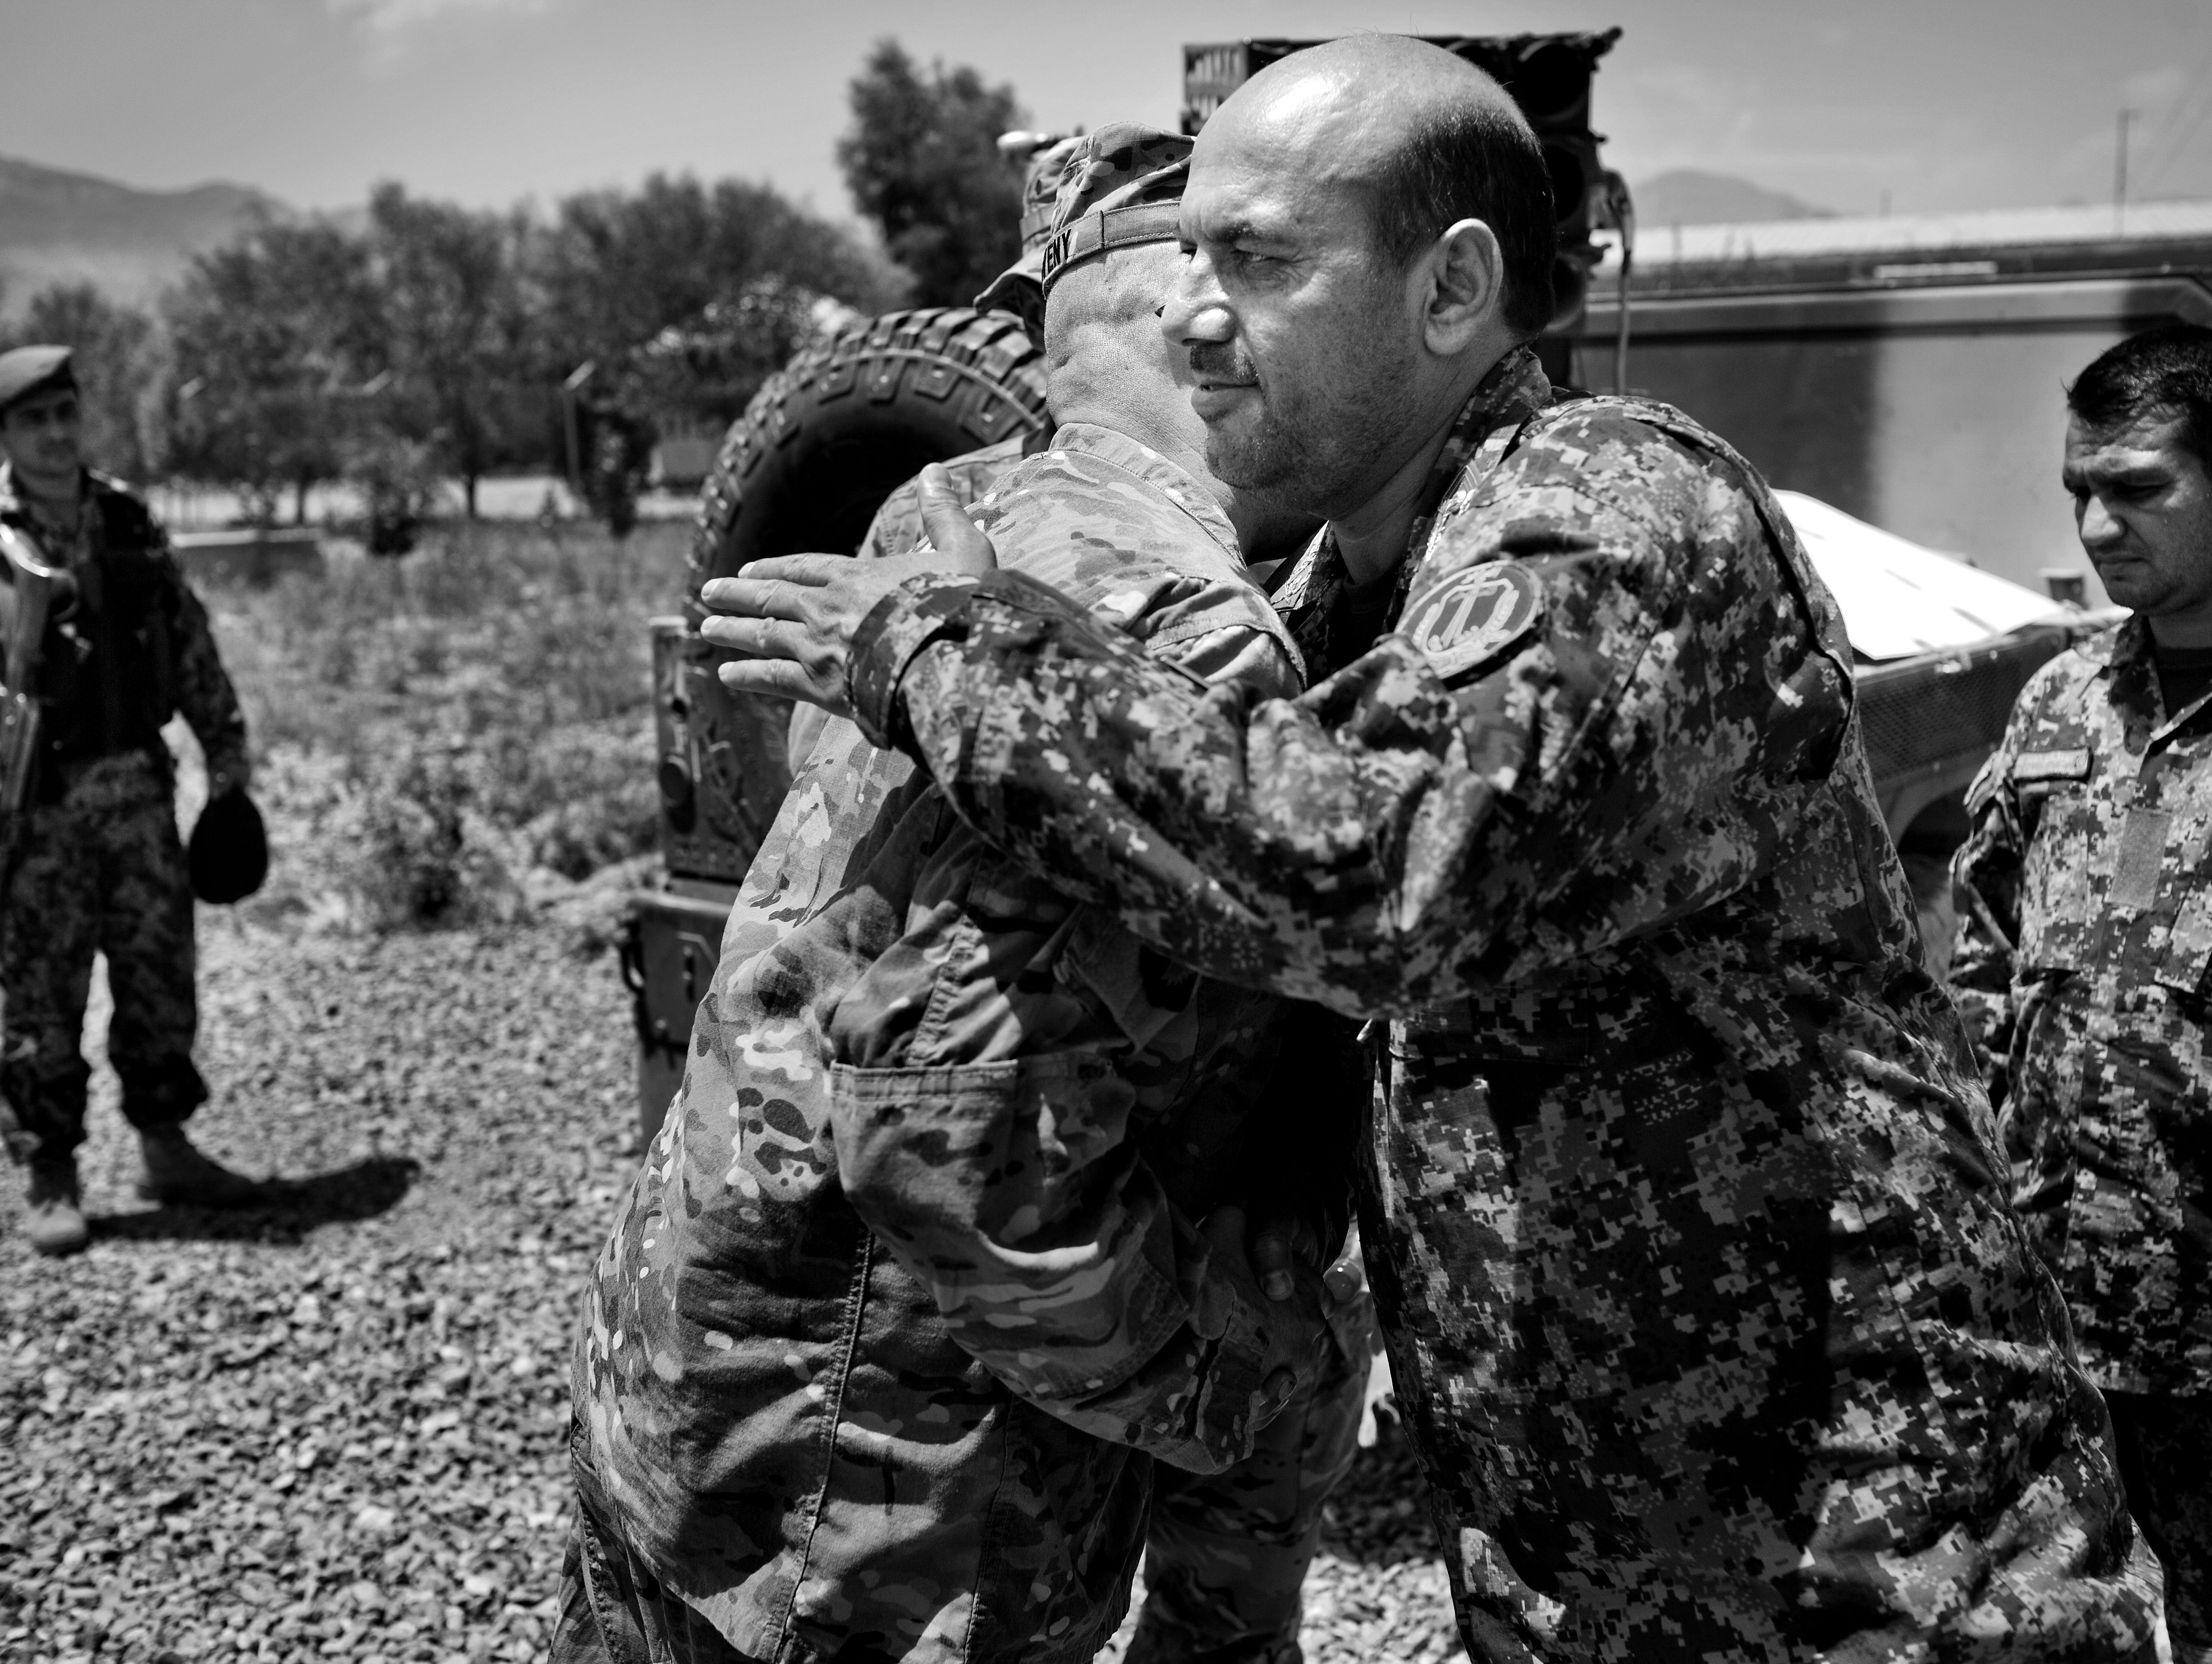 Col. Valery Keaveny, center left, commander of the 4th Brigade of the 101st Airborne Division, hugs General Mohammed Naseer, commander of the 1-203 Brigade, Thunder Corps of the Afghan National Army.